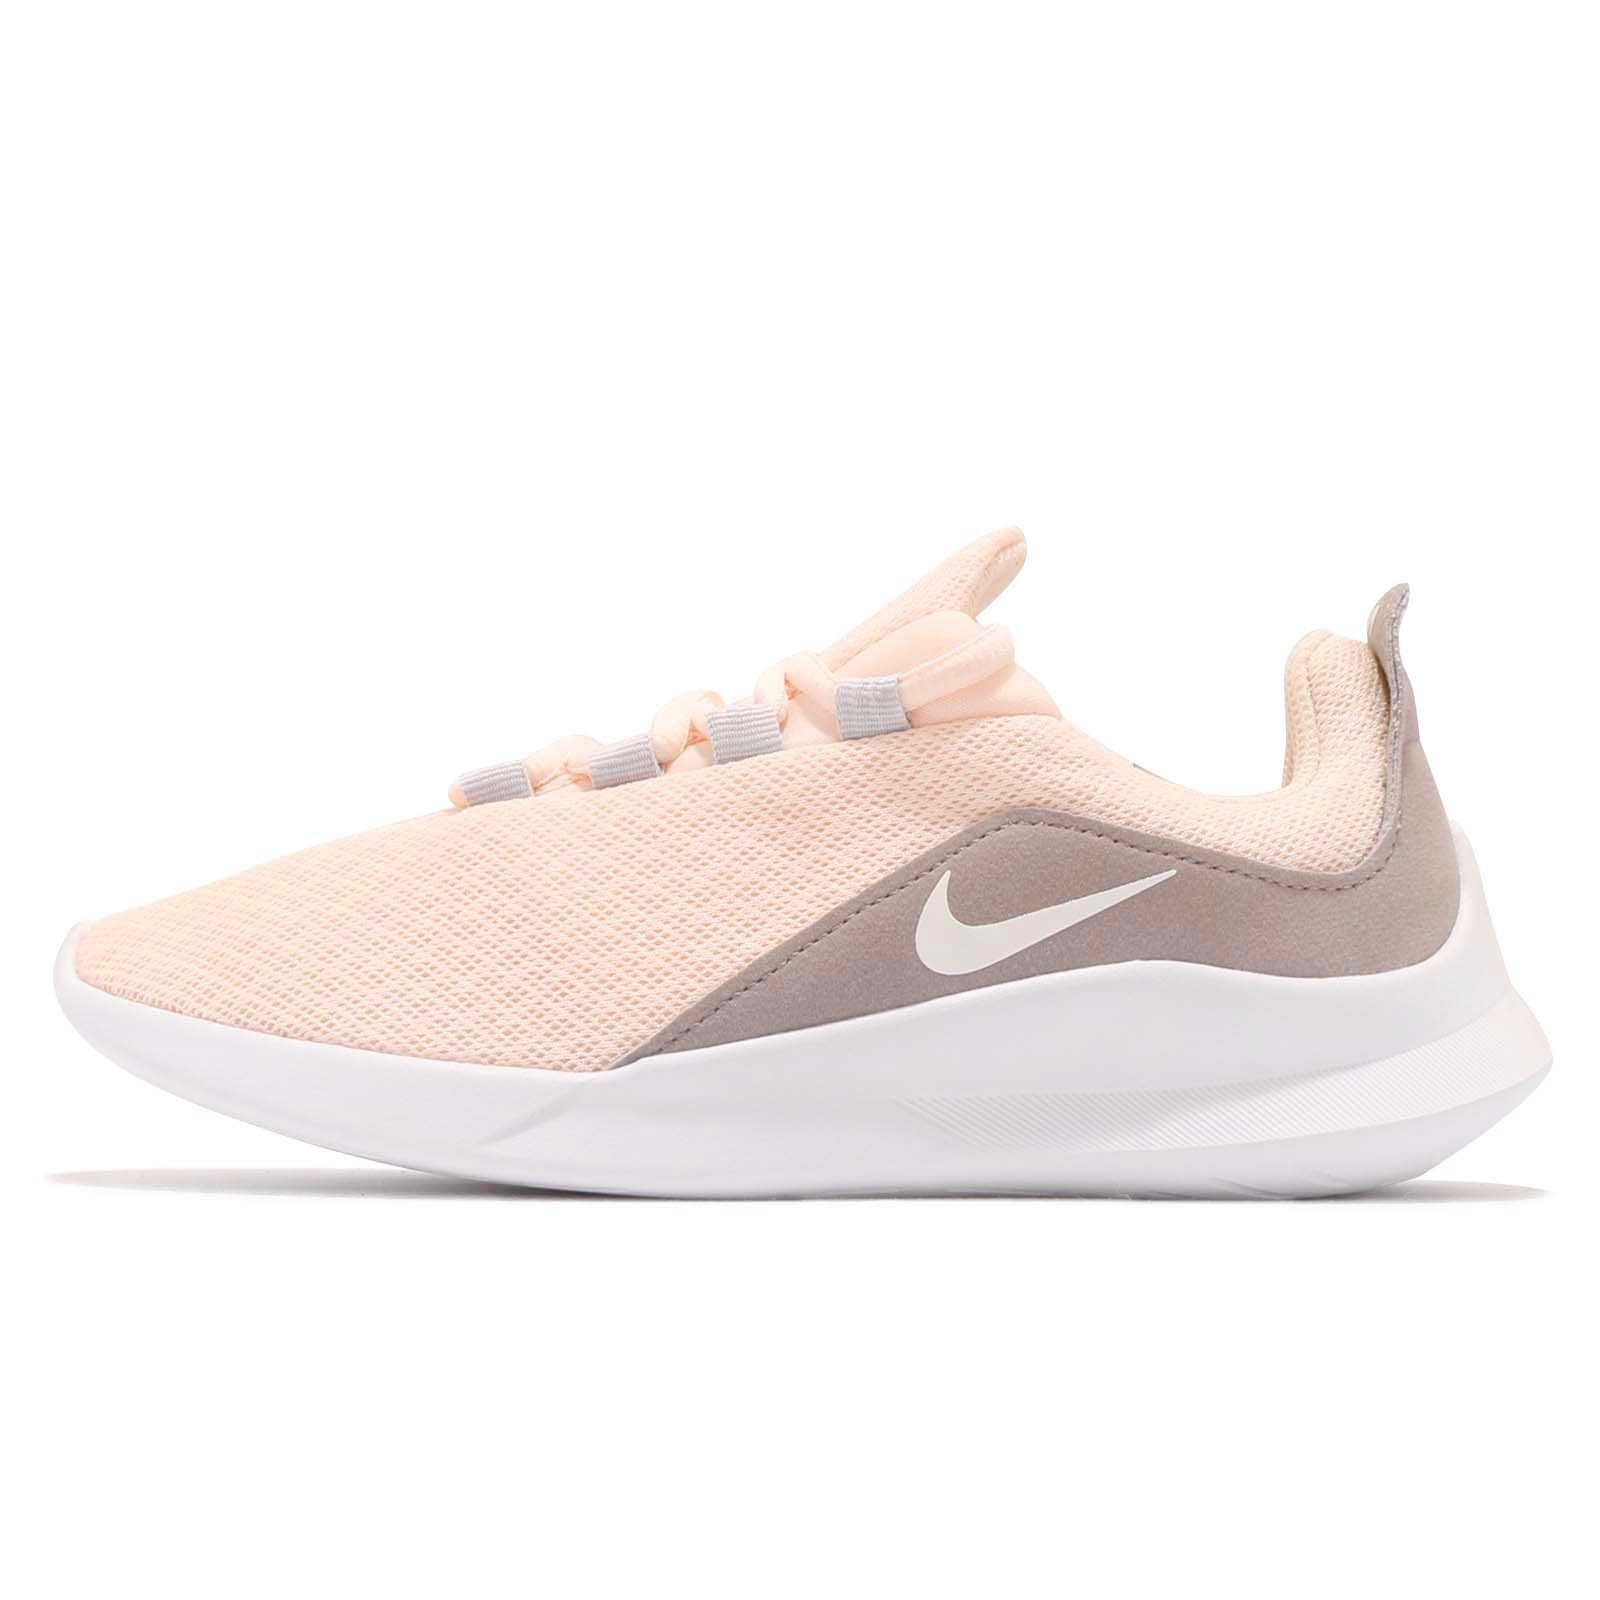 Nike Women's Viale Running Shoe Guava Ice/Sail/Atmosphere Vast Grey, US-0 / Asia Size s